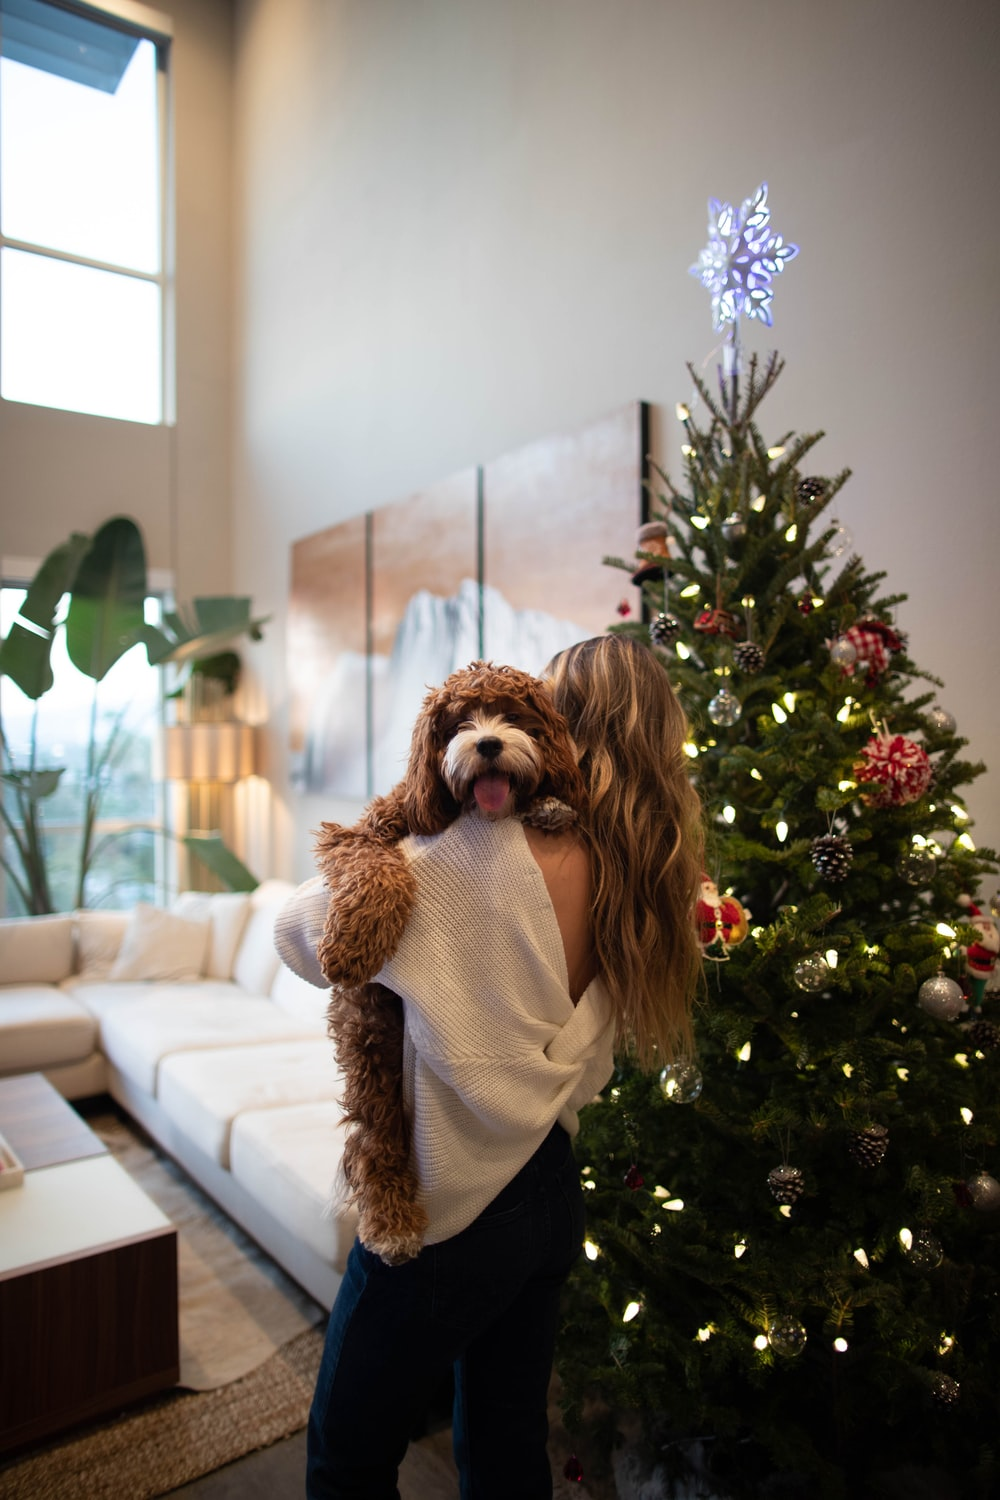 woman carrying dog beside Christmas tree